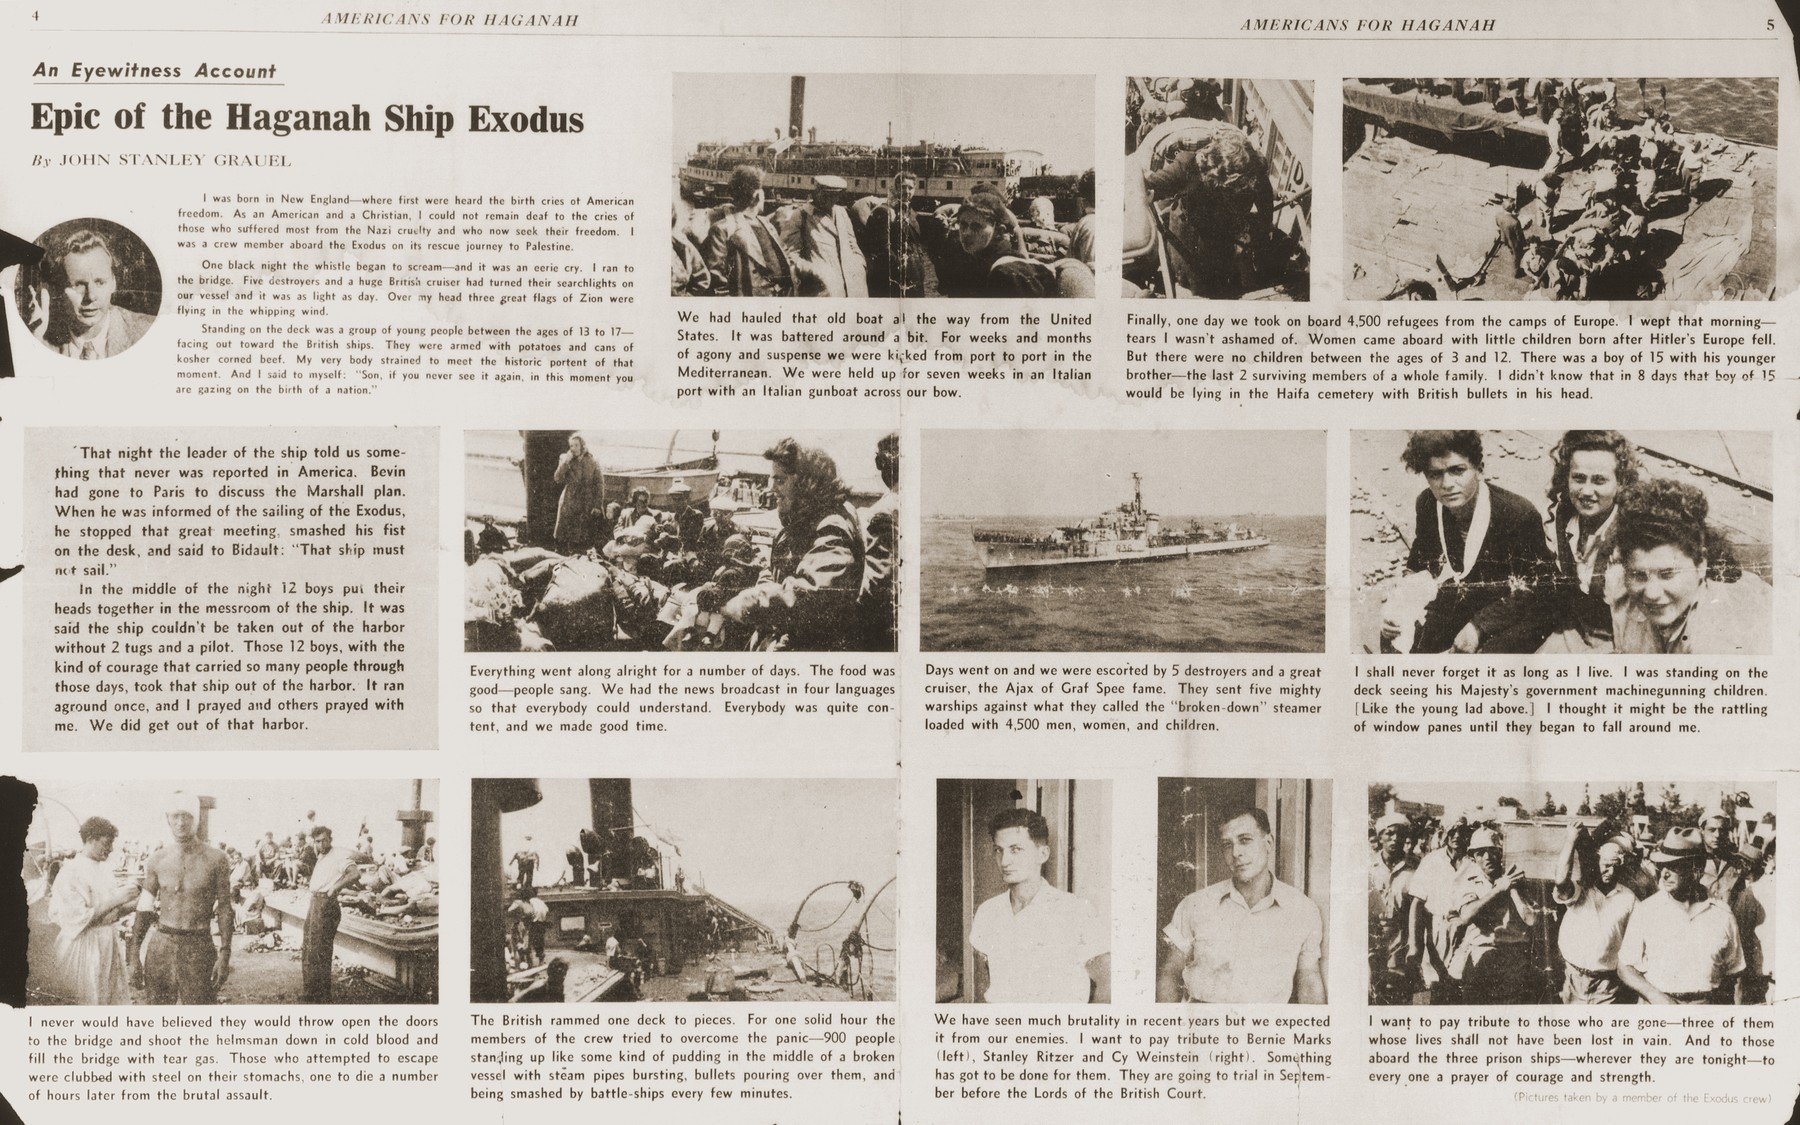 """Inside page of the American Zionist newspaper, """"Americans for Haganah"""" of September 15, 1947, featuring an illustrated eyewitness account of the Exodus 1947 by one of its crewmen, John Stanley Grauel."""